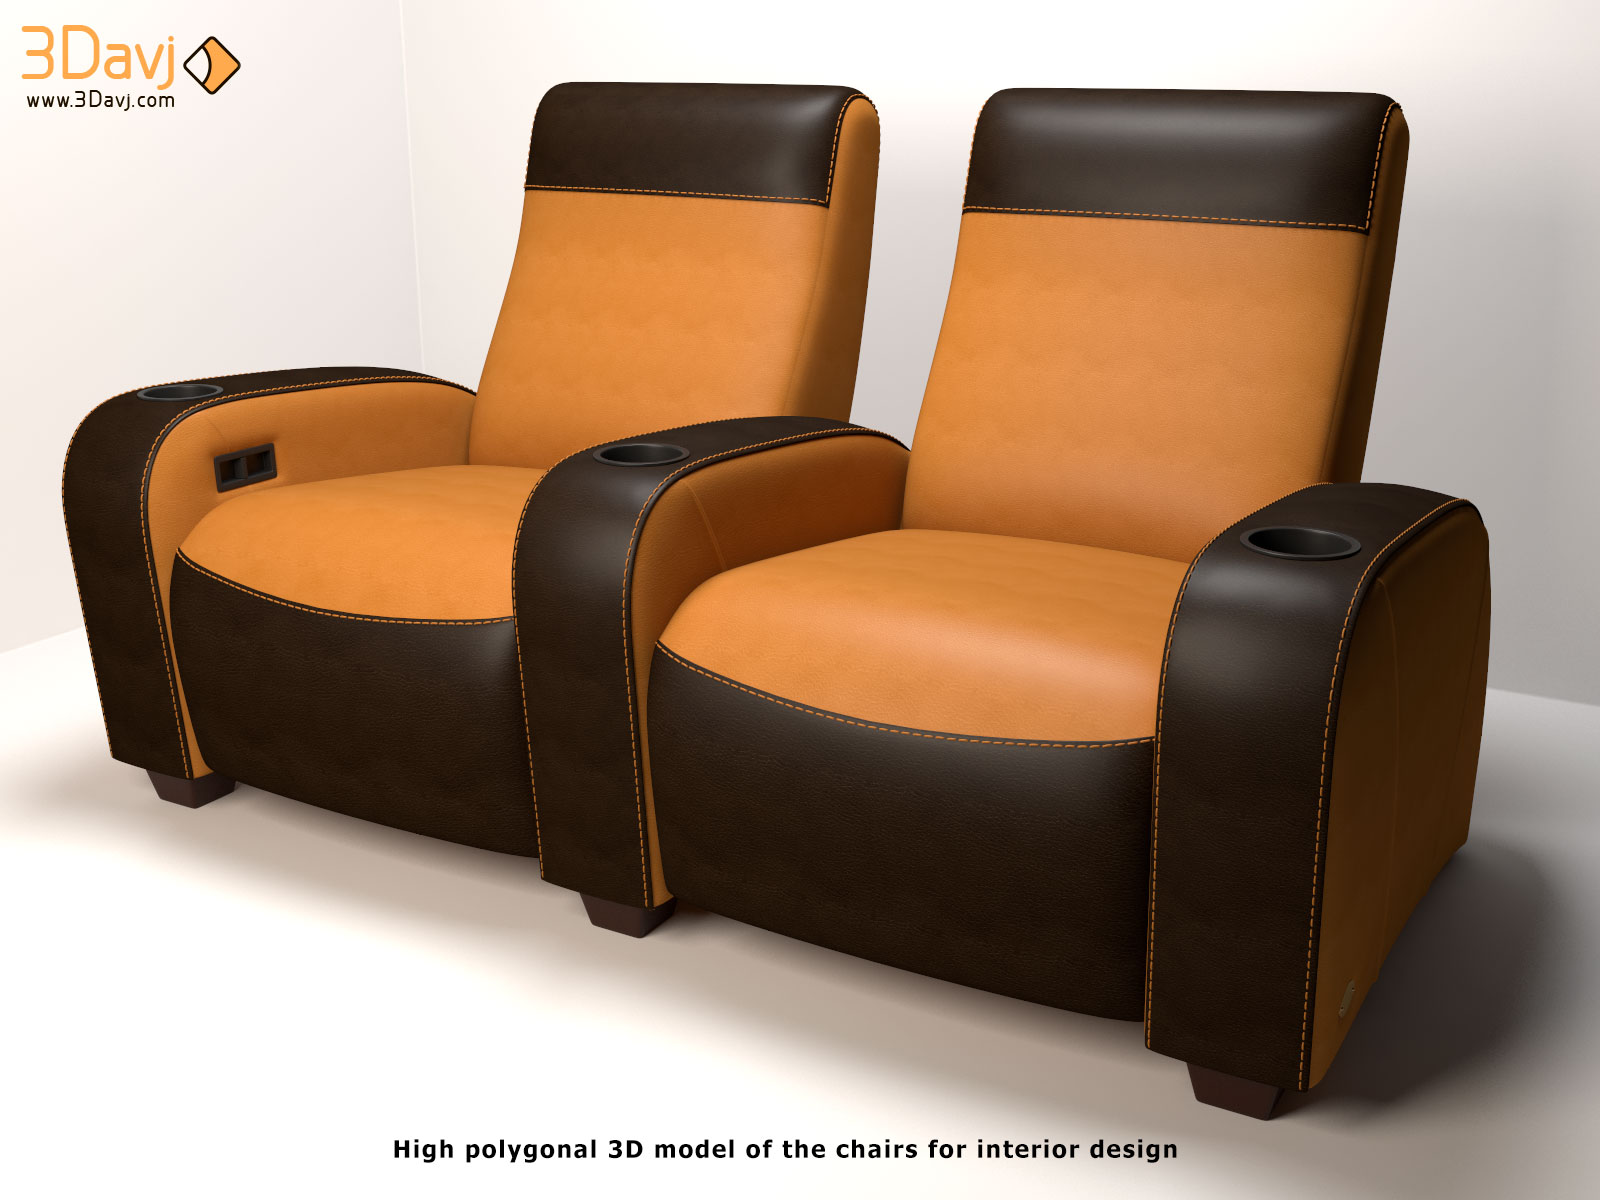 3D-model-for-interior-design-chair-deco